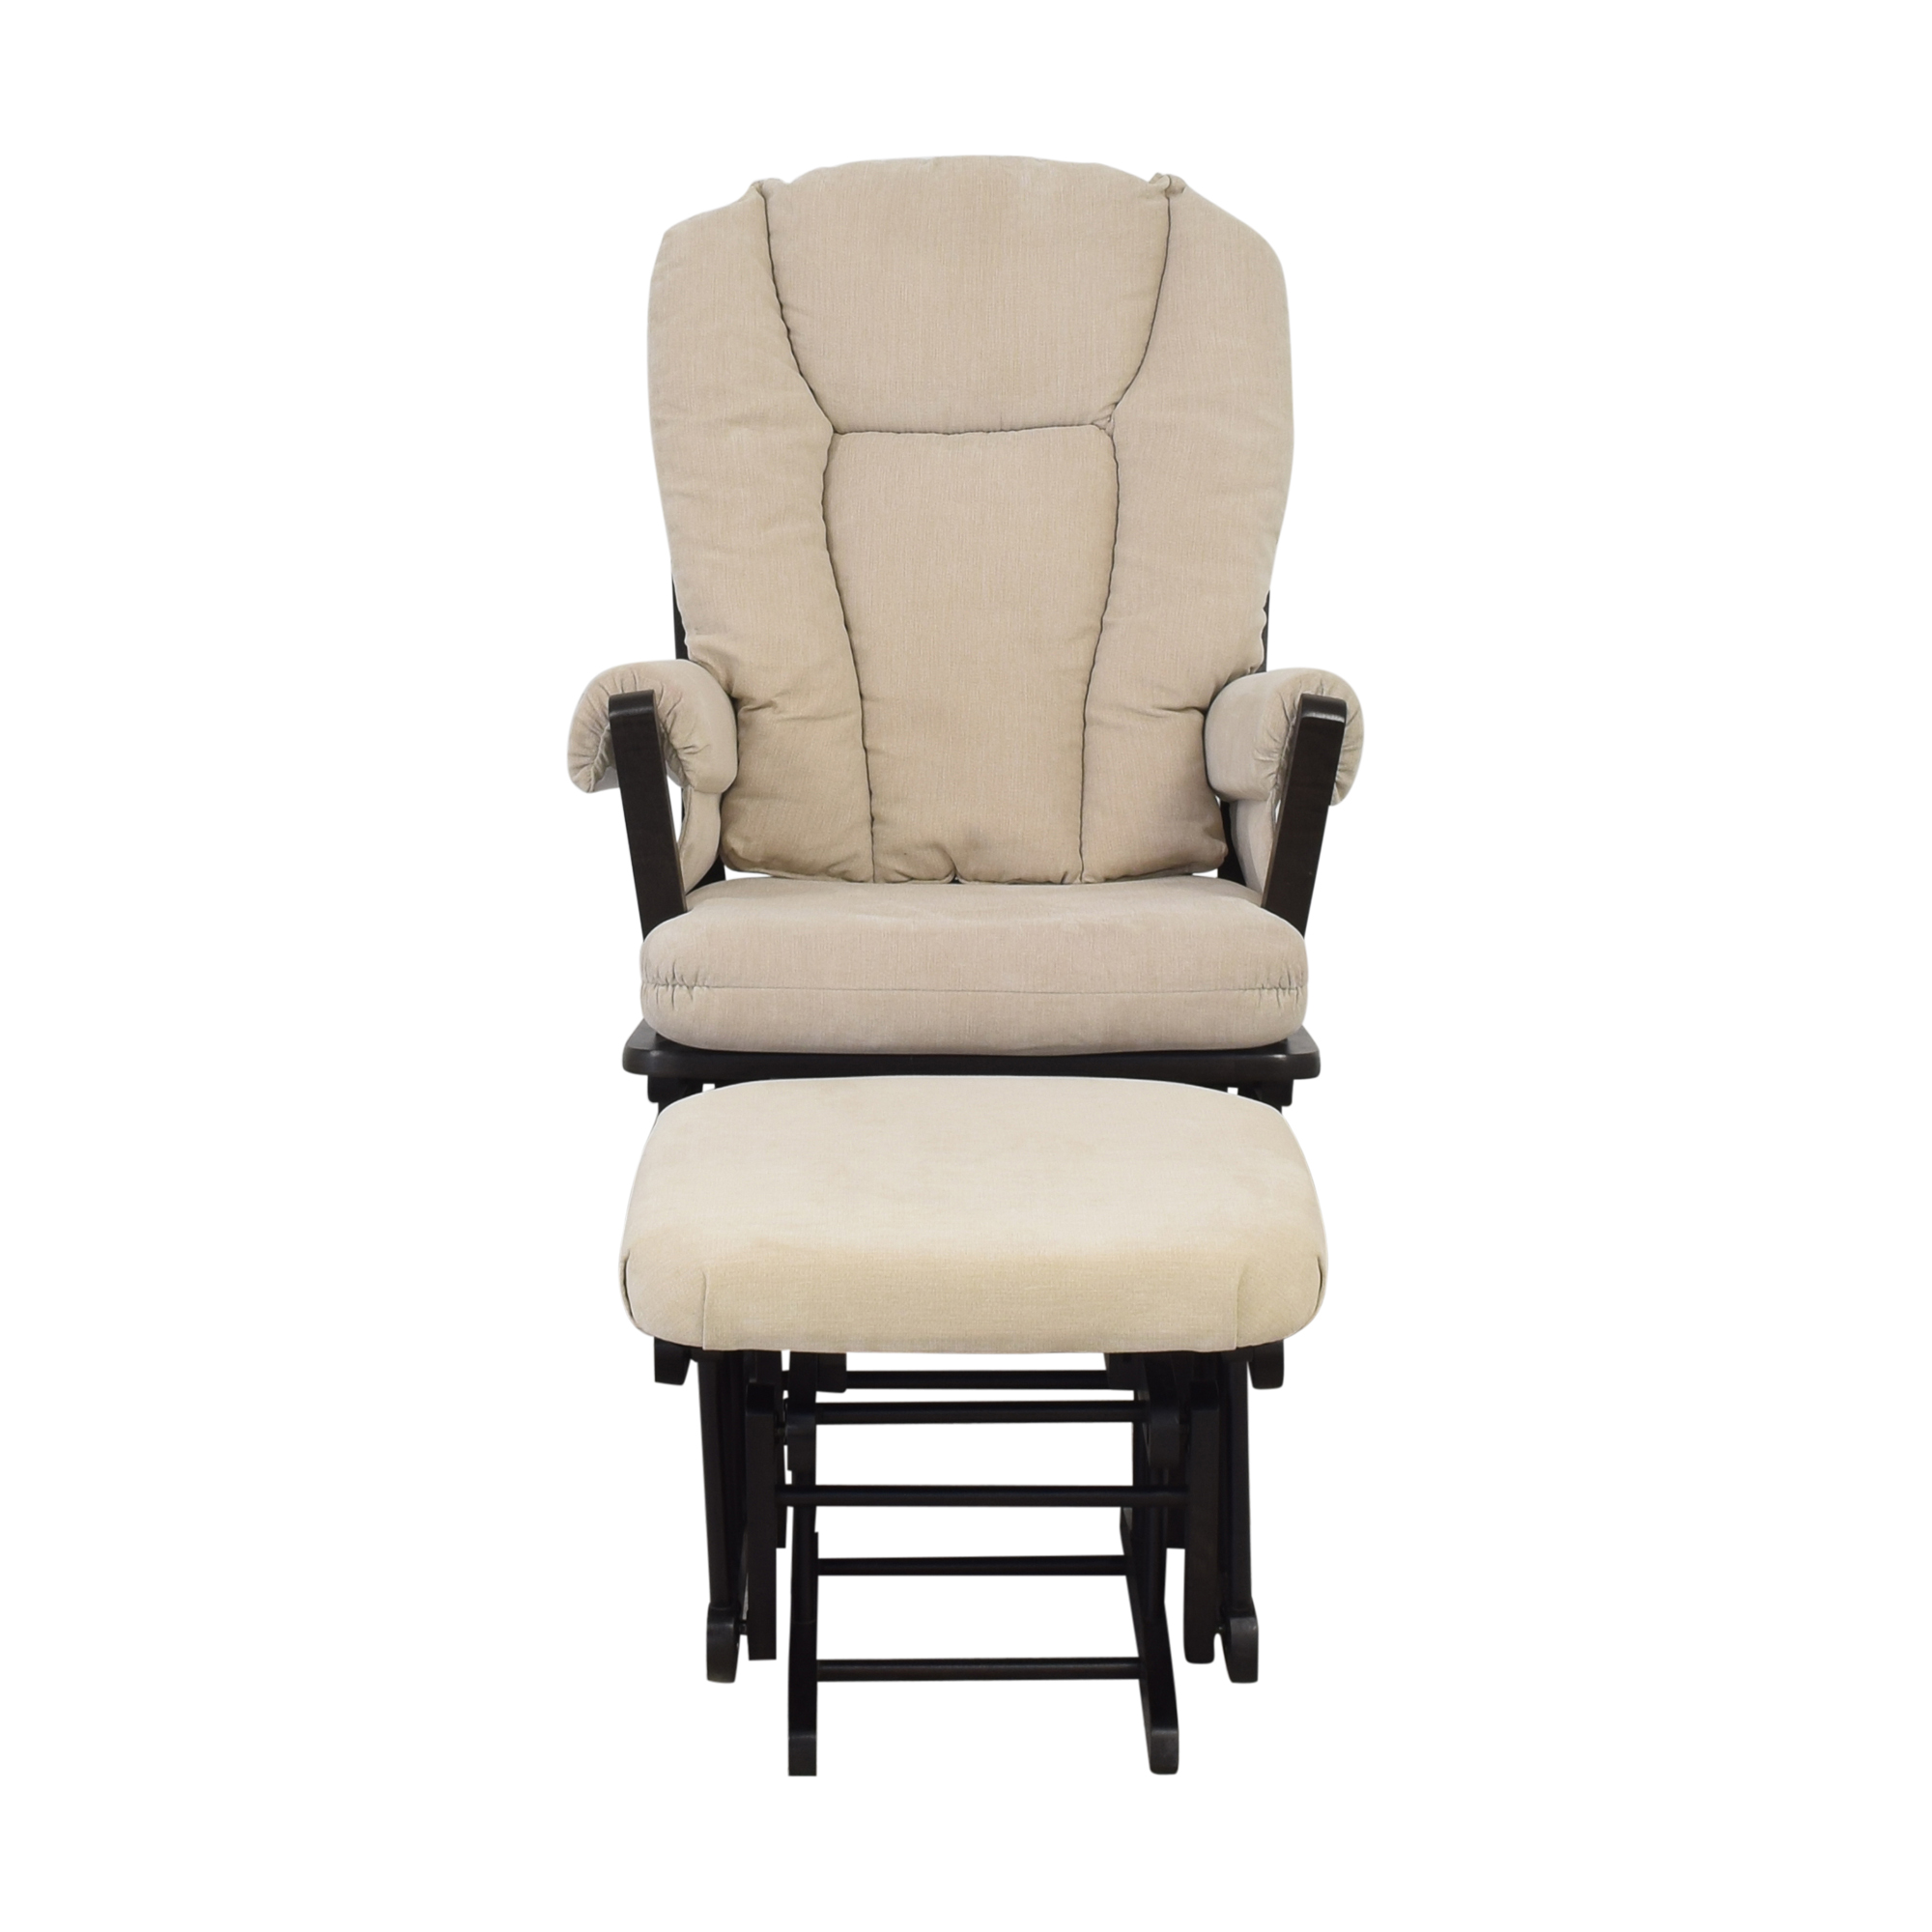 Dutailier Dutalier Rocking Chair and Ottoman Chairs